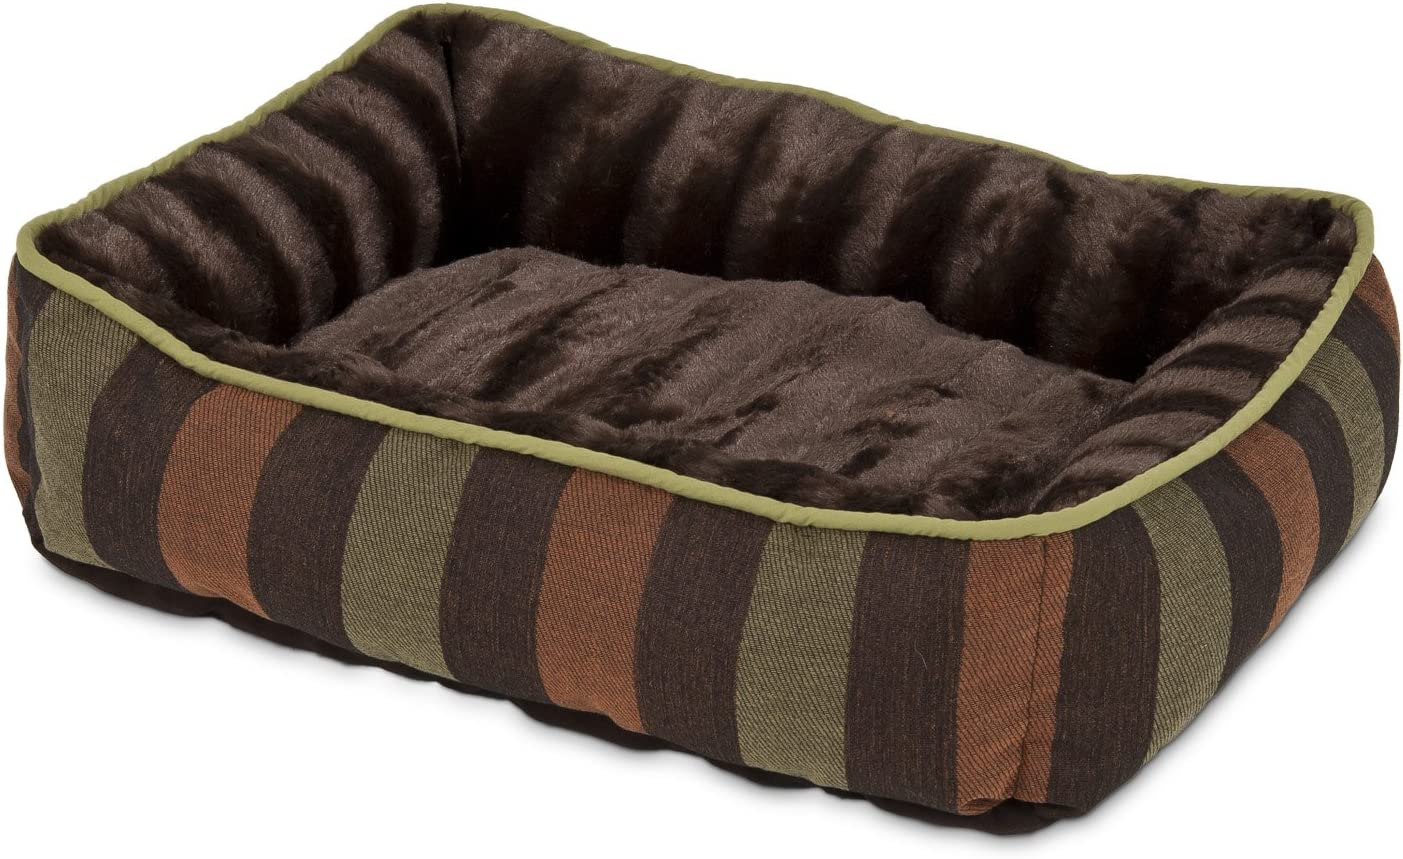 Petmate Fashion Rectangular Lounger